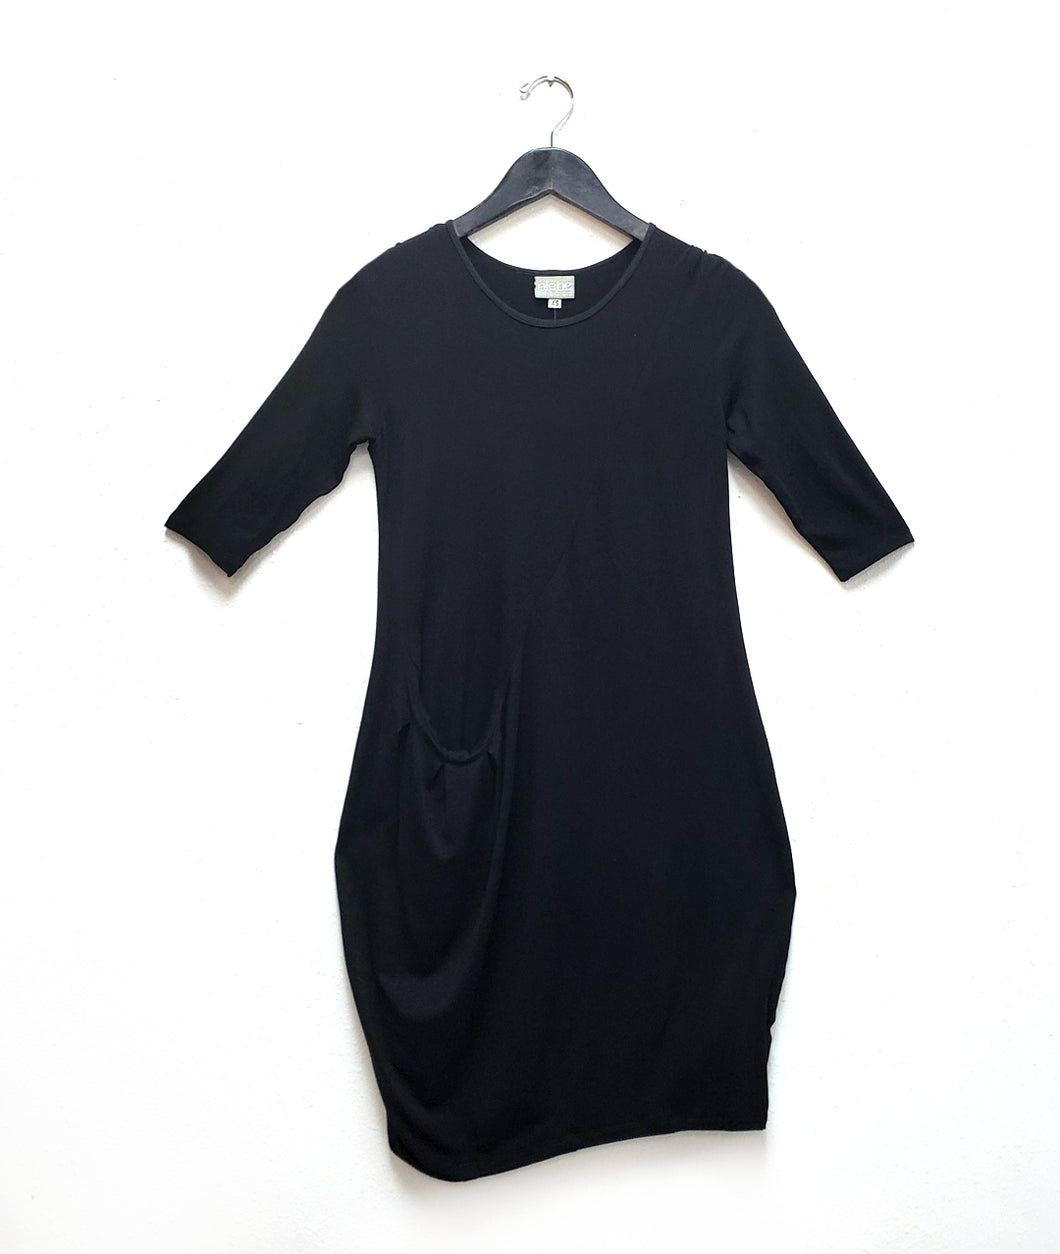 black dress with a diagonal seam across the body with a pocket set in the seam